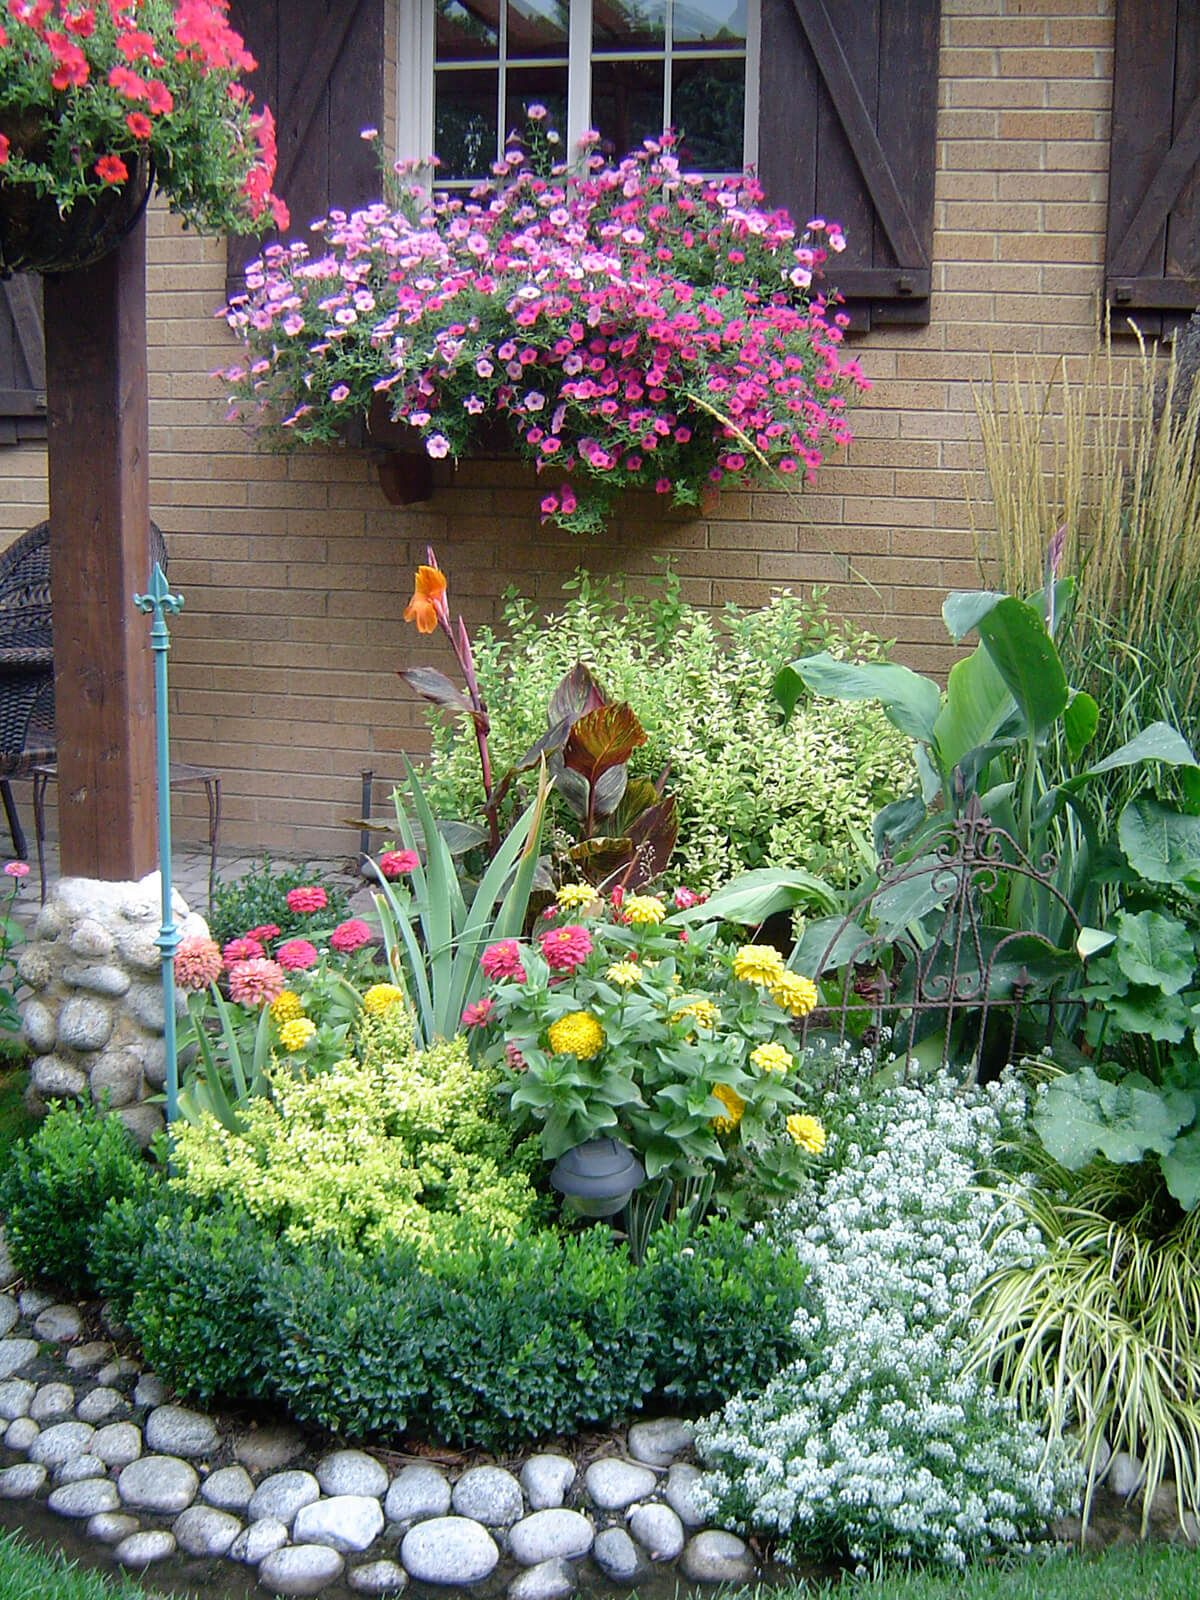 27 Gorgeous And Creative Flower Bed Ideas To Try Garden Ideas